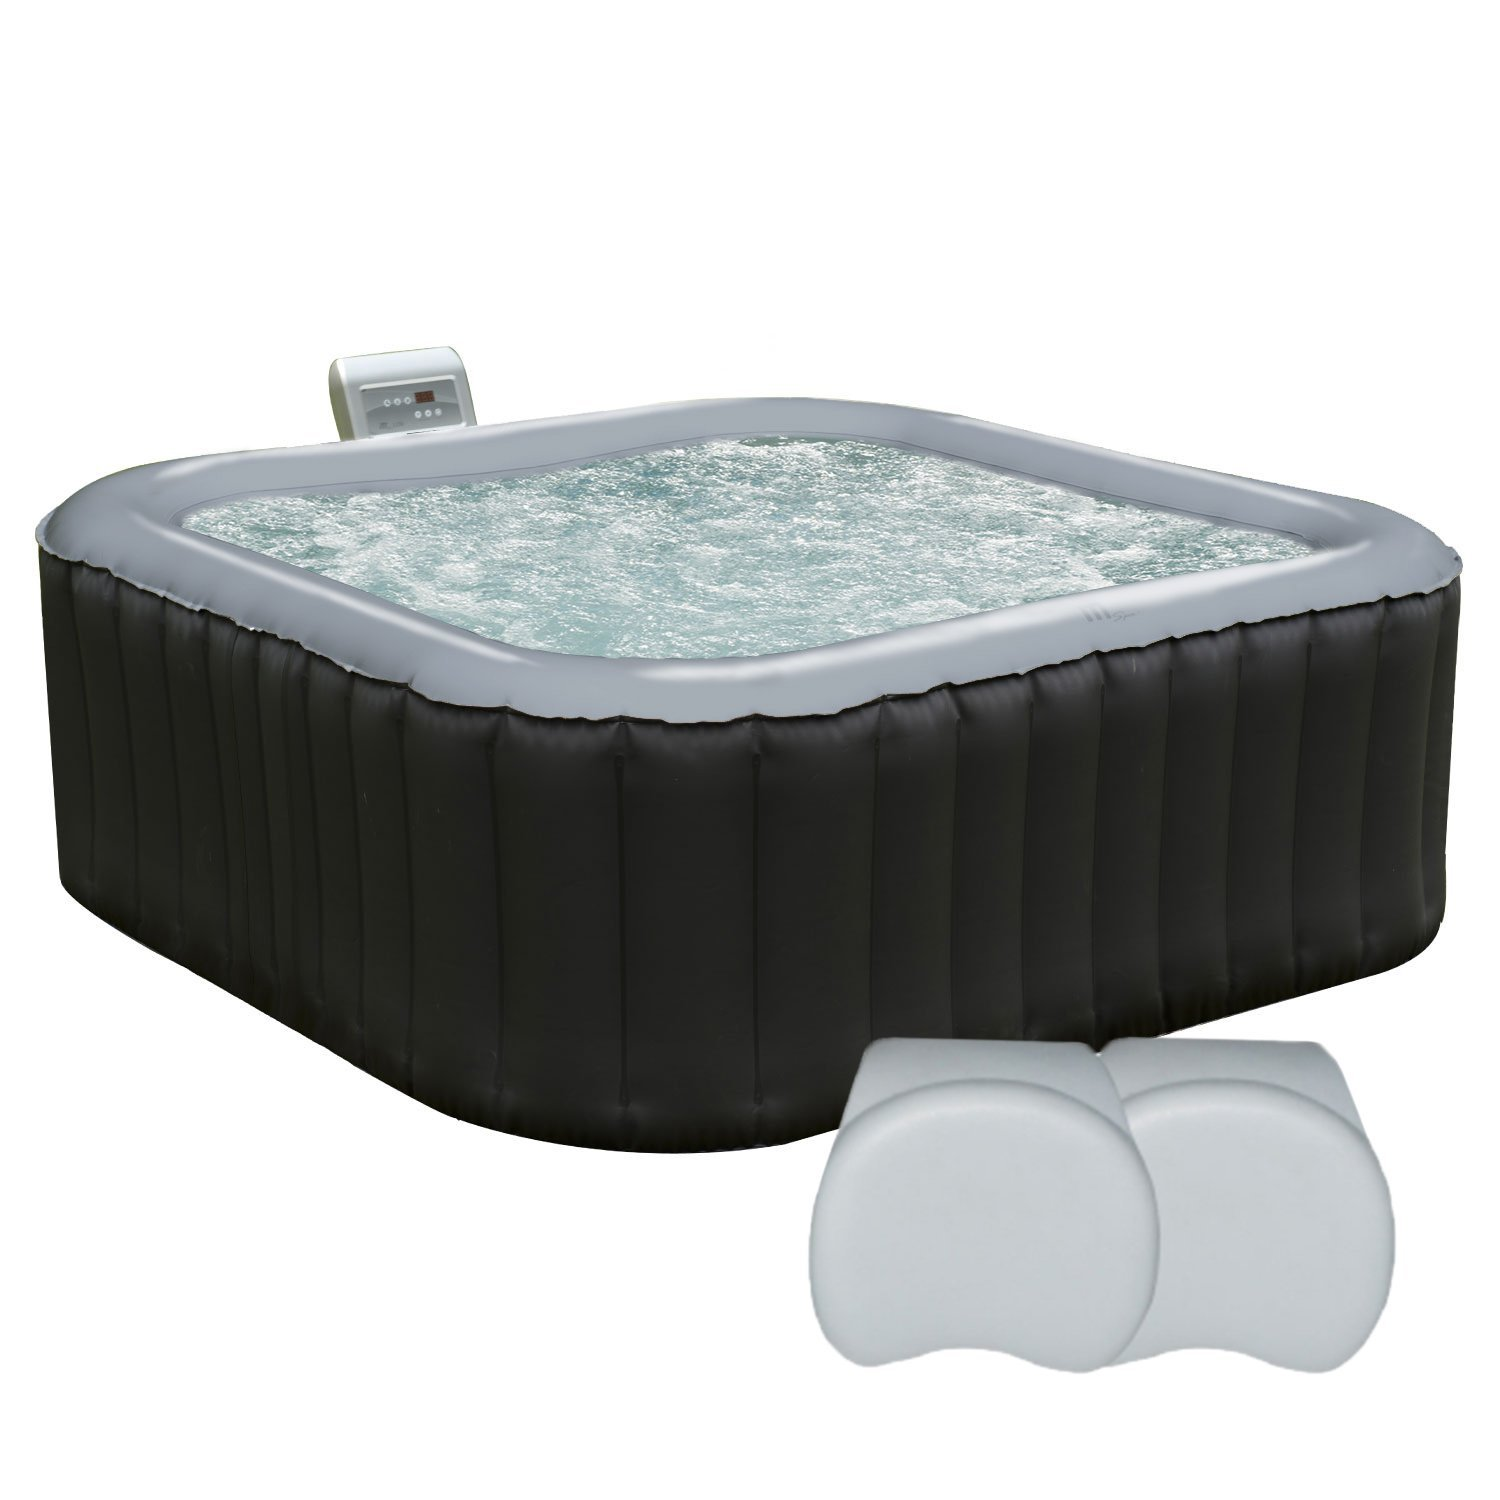 Spa gonflable comparatif de spa et de jacuzzi gonflable - Spa exterieur 4 places ...